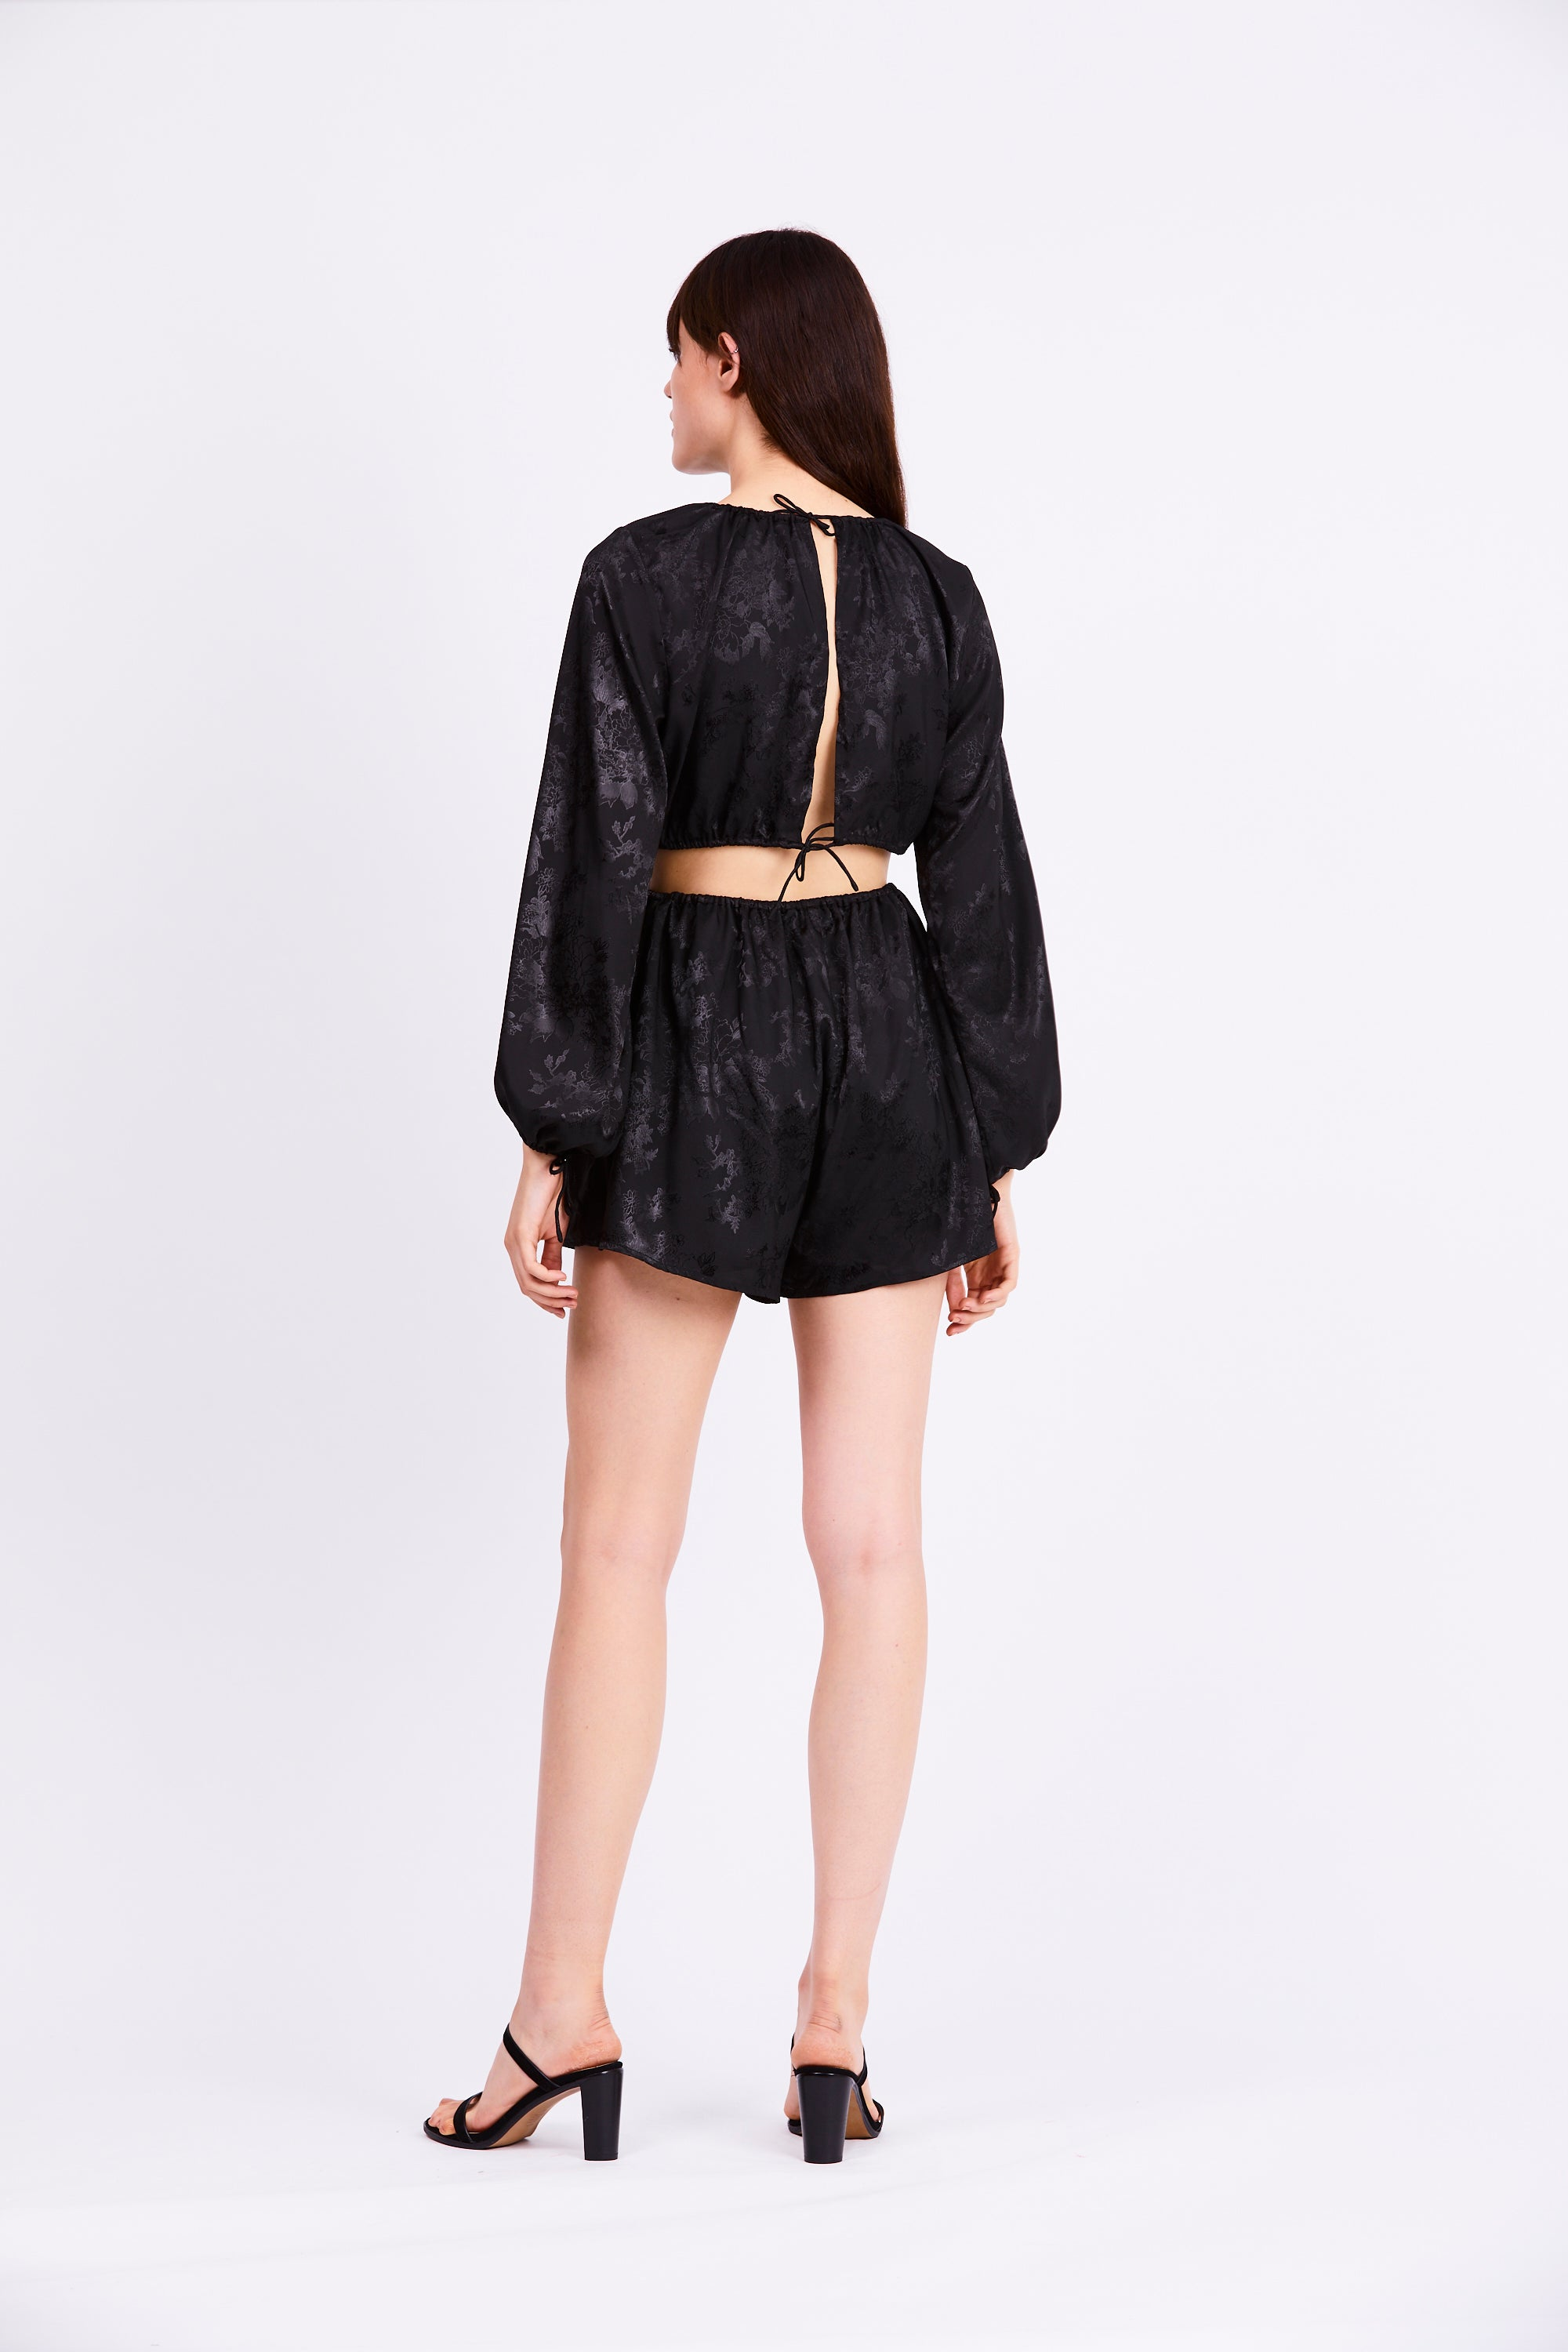 THE ORIENTAL DRAW IN BLOUSE | BLACK